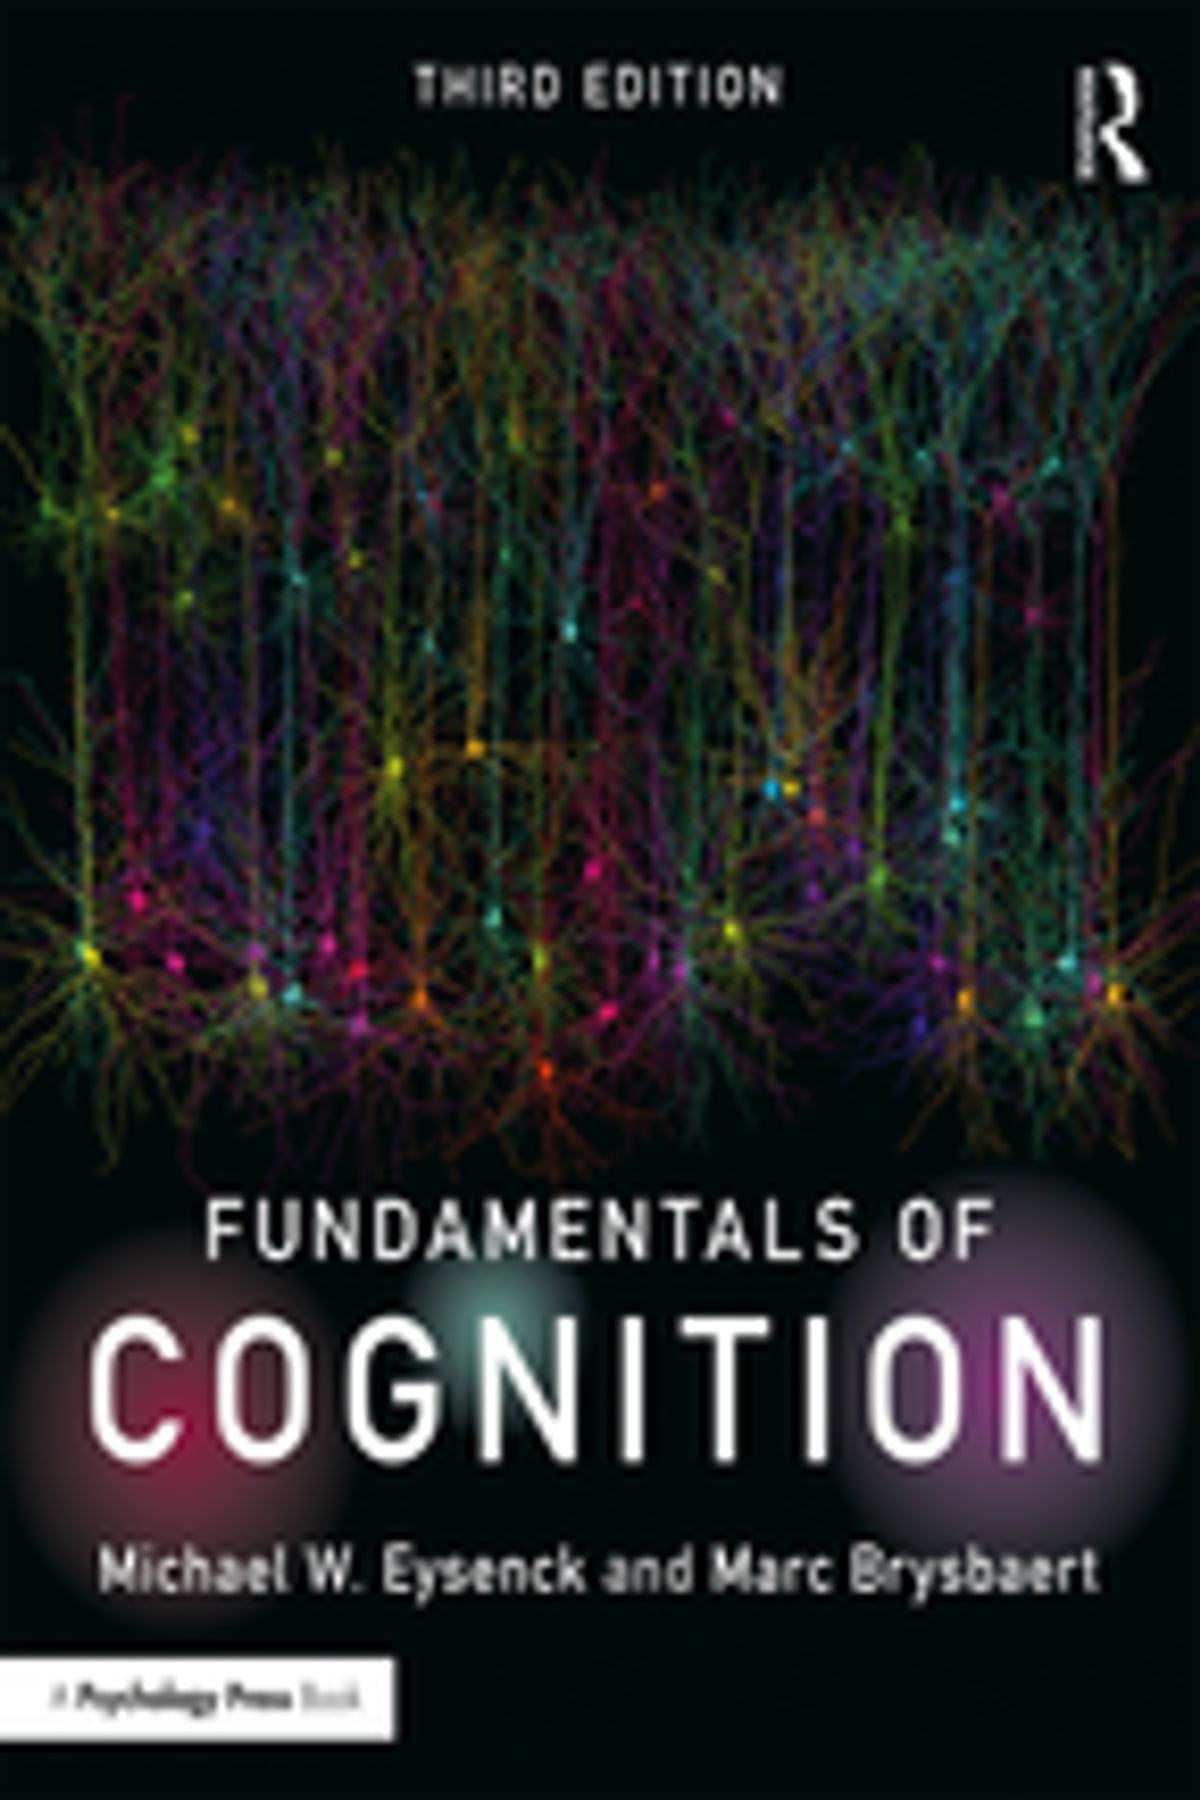 Download fundamentals of cognition 2nd edition free by hiltonvr54.